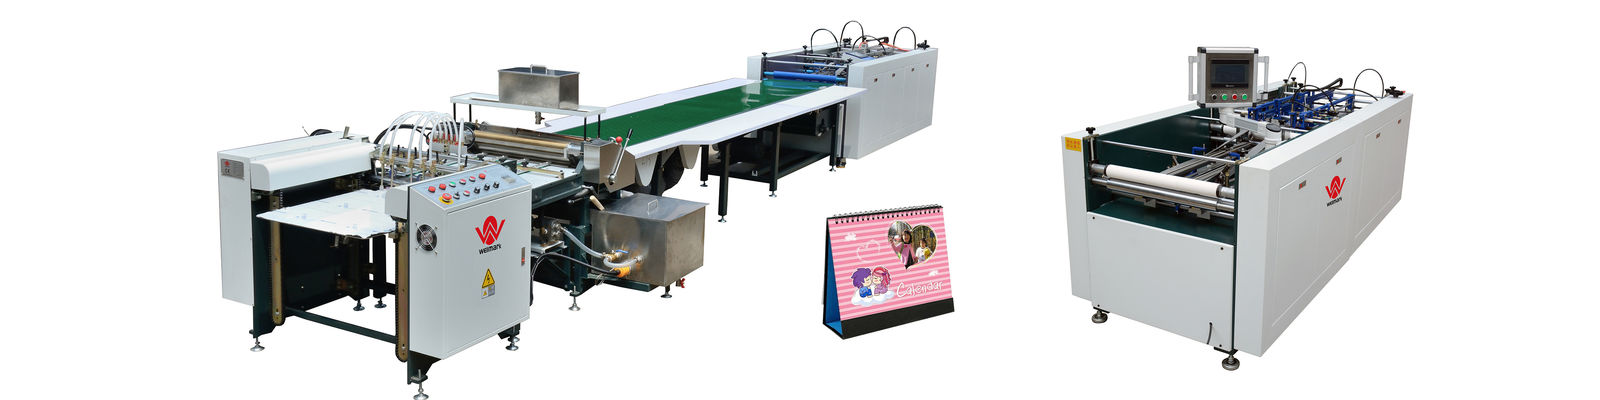 China best Semi Automatic Case Making Machine on sales